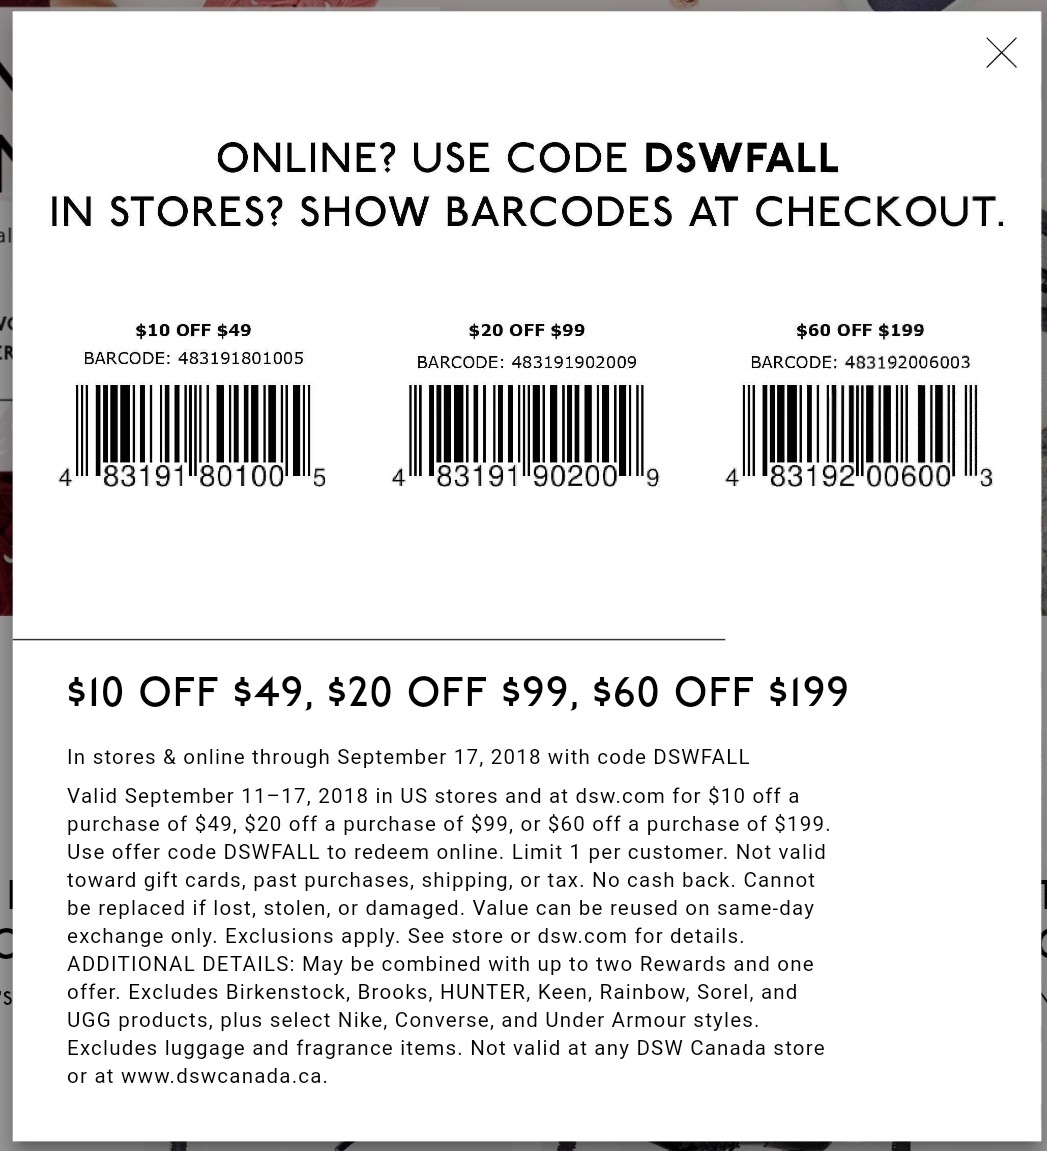 Dsw Printable Coupon - Printable Coupons 2019 - Free Printable Coupons For Dsw Shoes